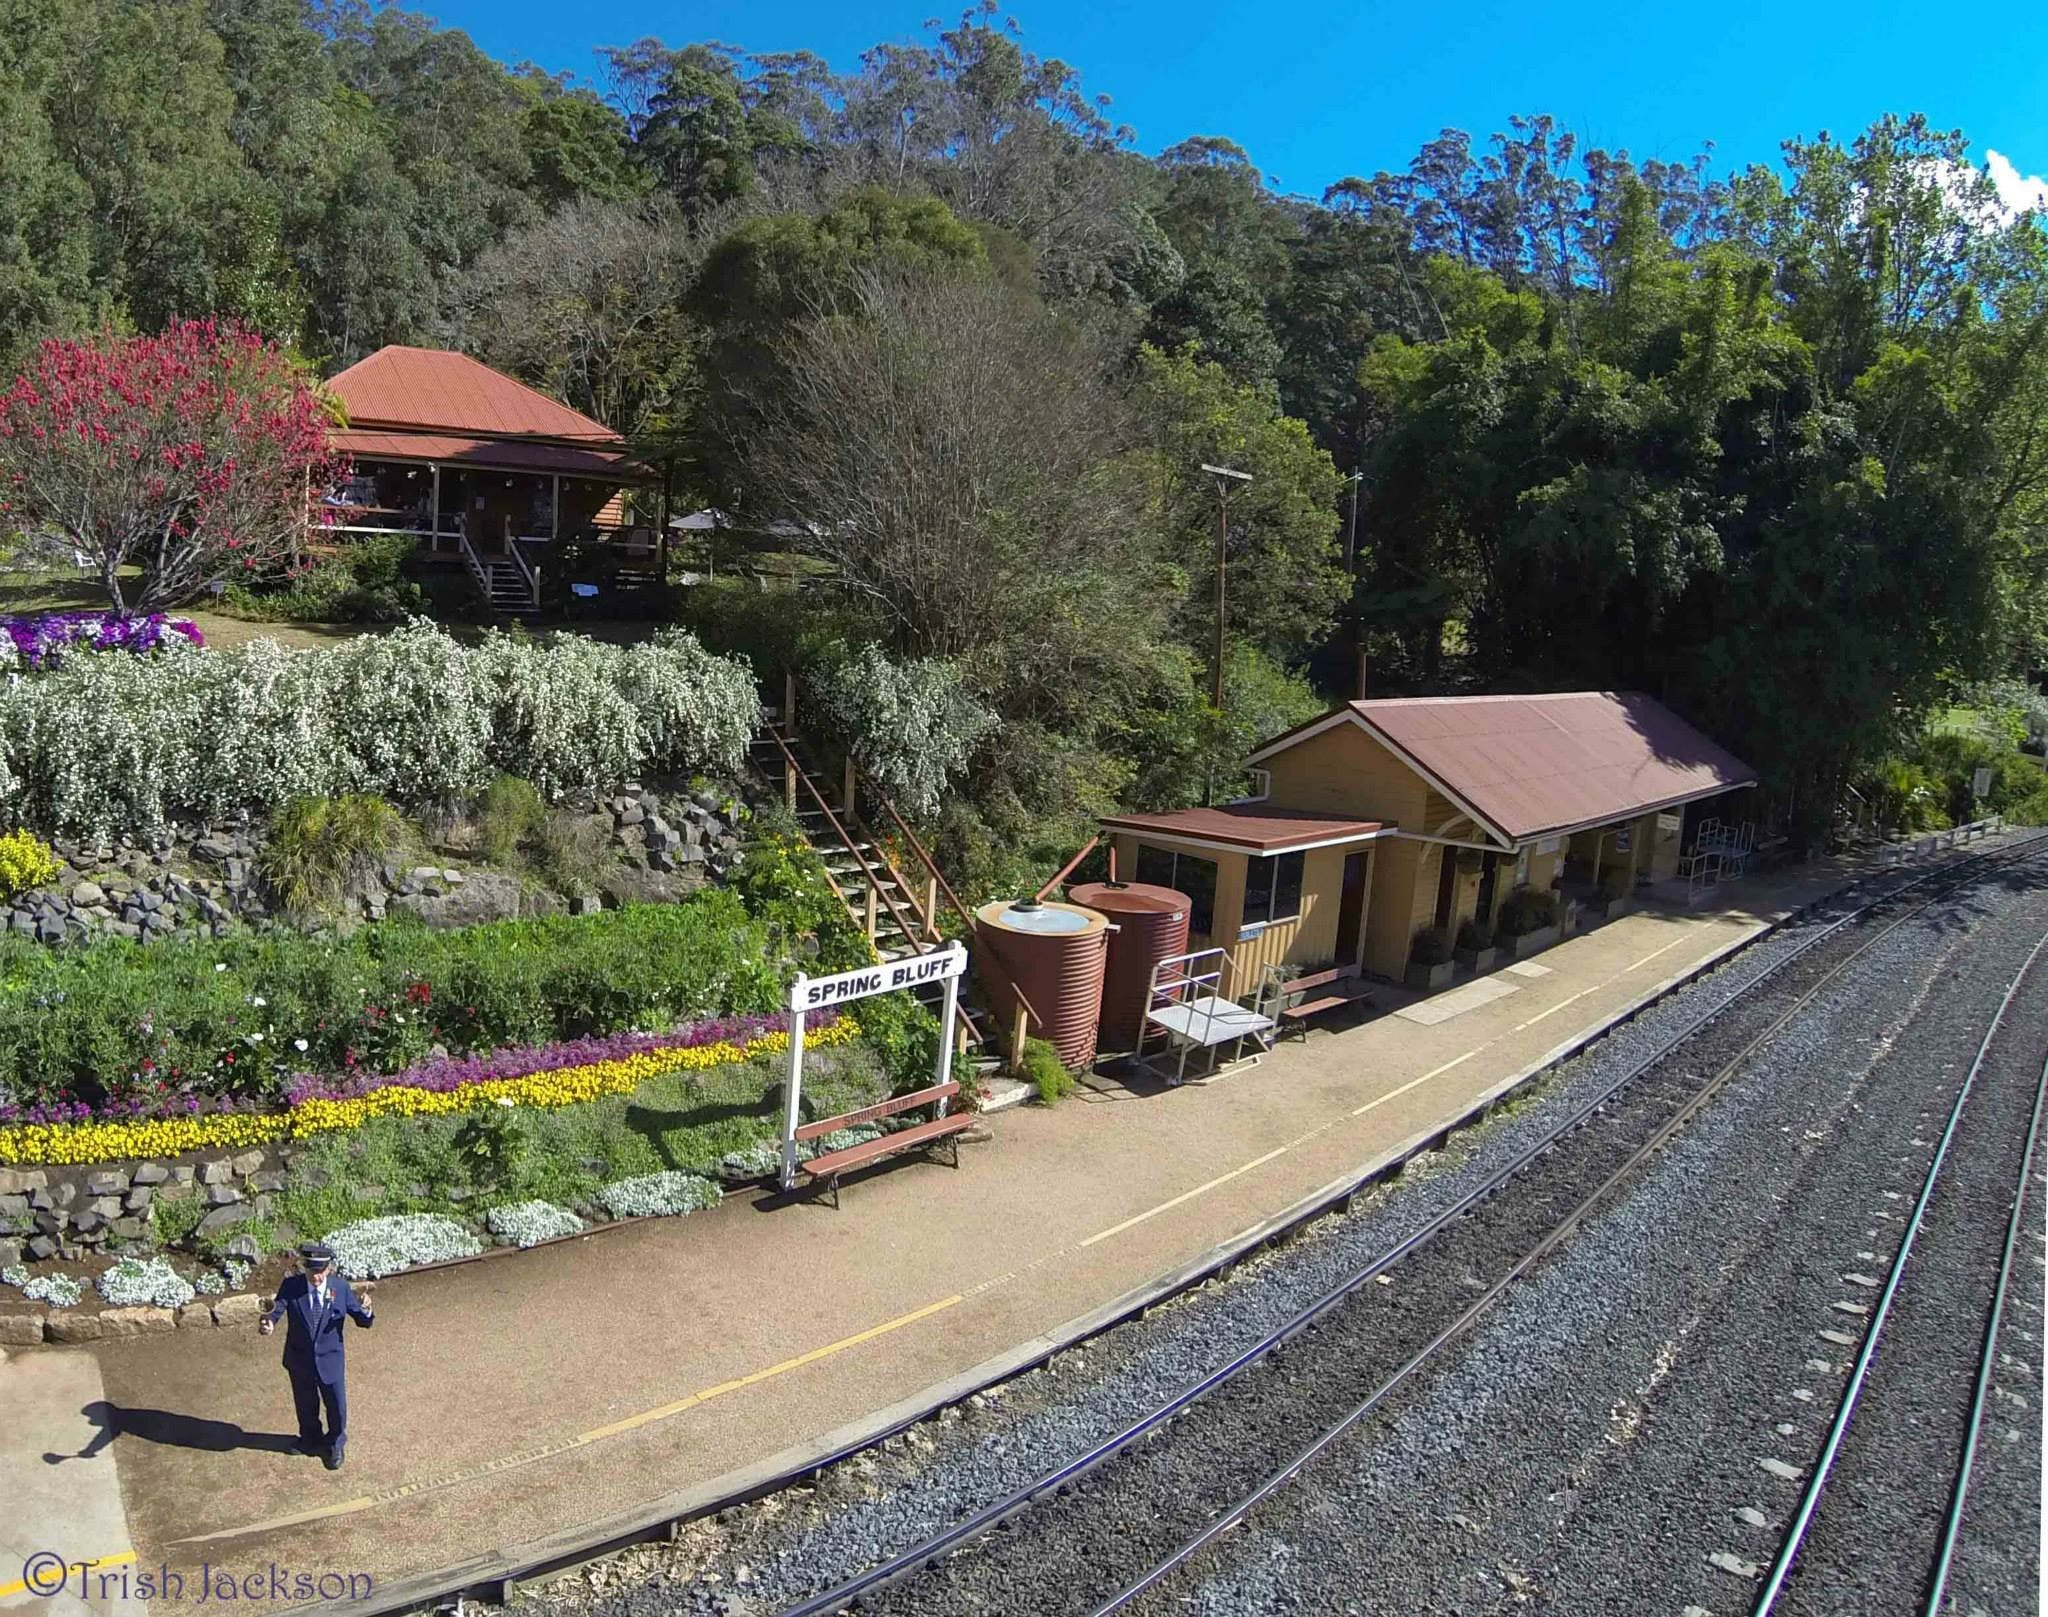 Spring Bluff Railway Station - Victoria Tourism